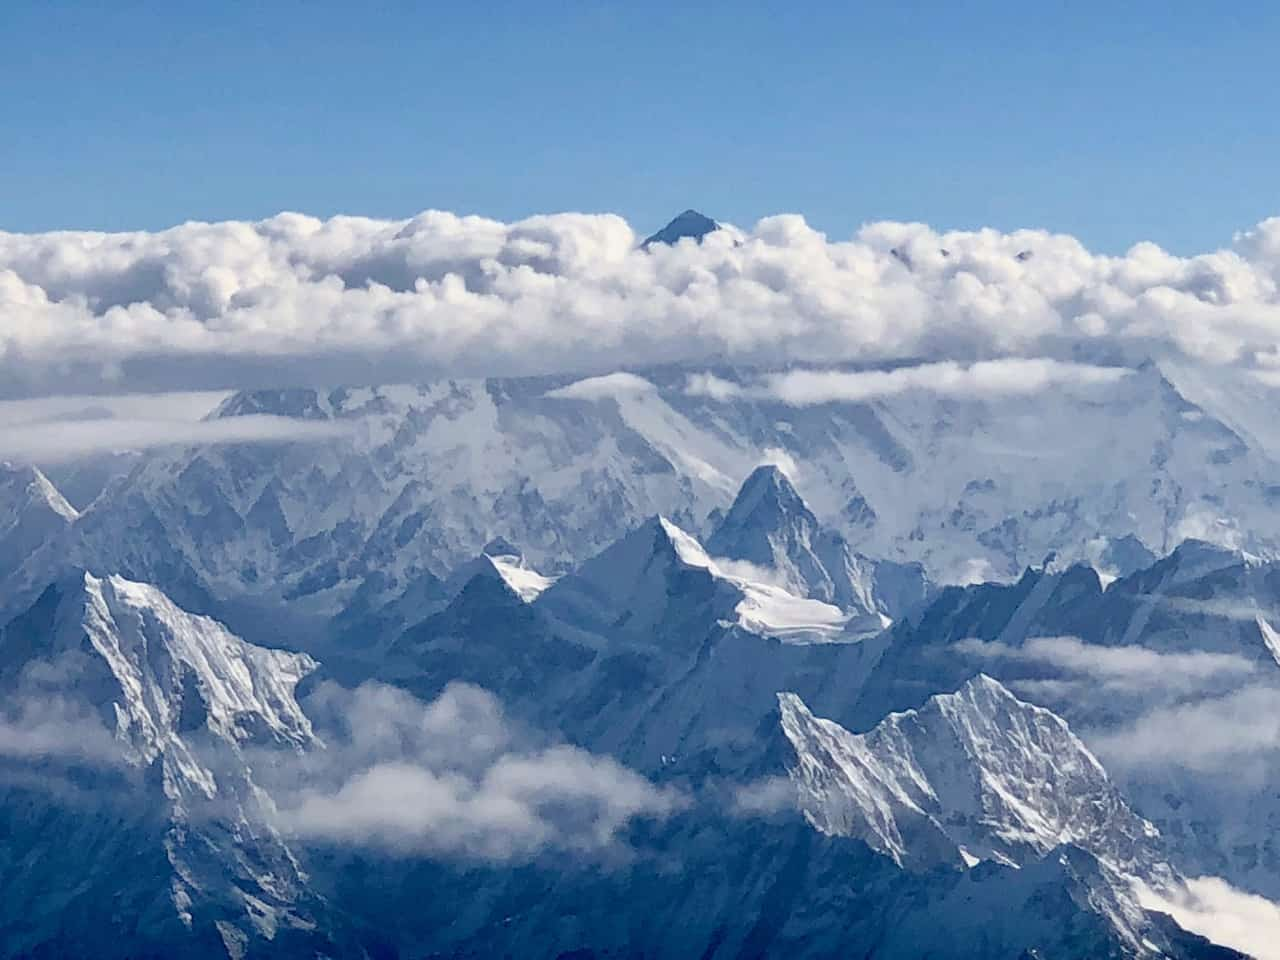 Seeing Mount Everest